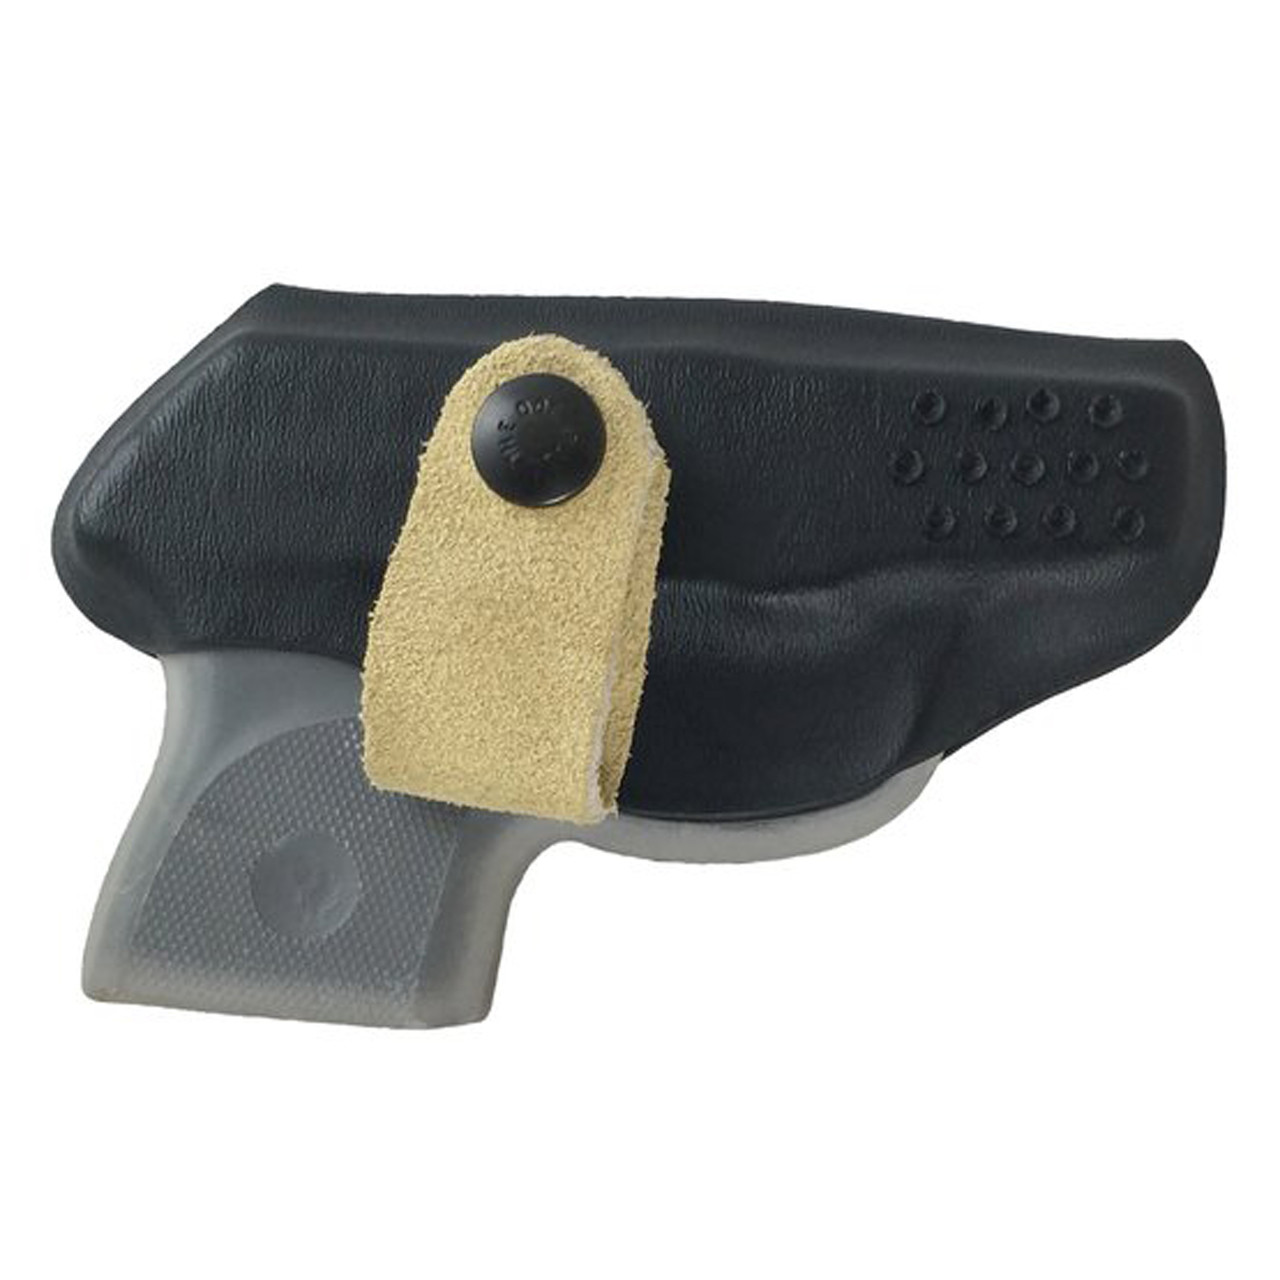 Flashbang Holsters Flashbang Women's Holster, Fits Charter Arms Lady, Right  Hand, Black 9220-LADY-10, UPC :616320140540